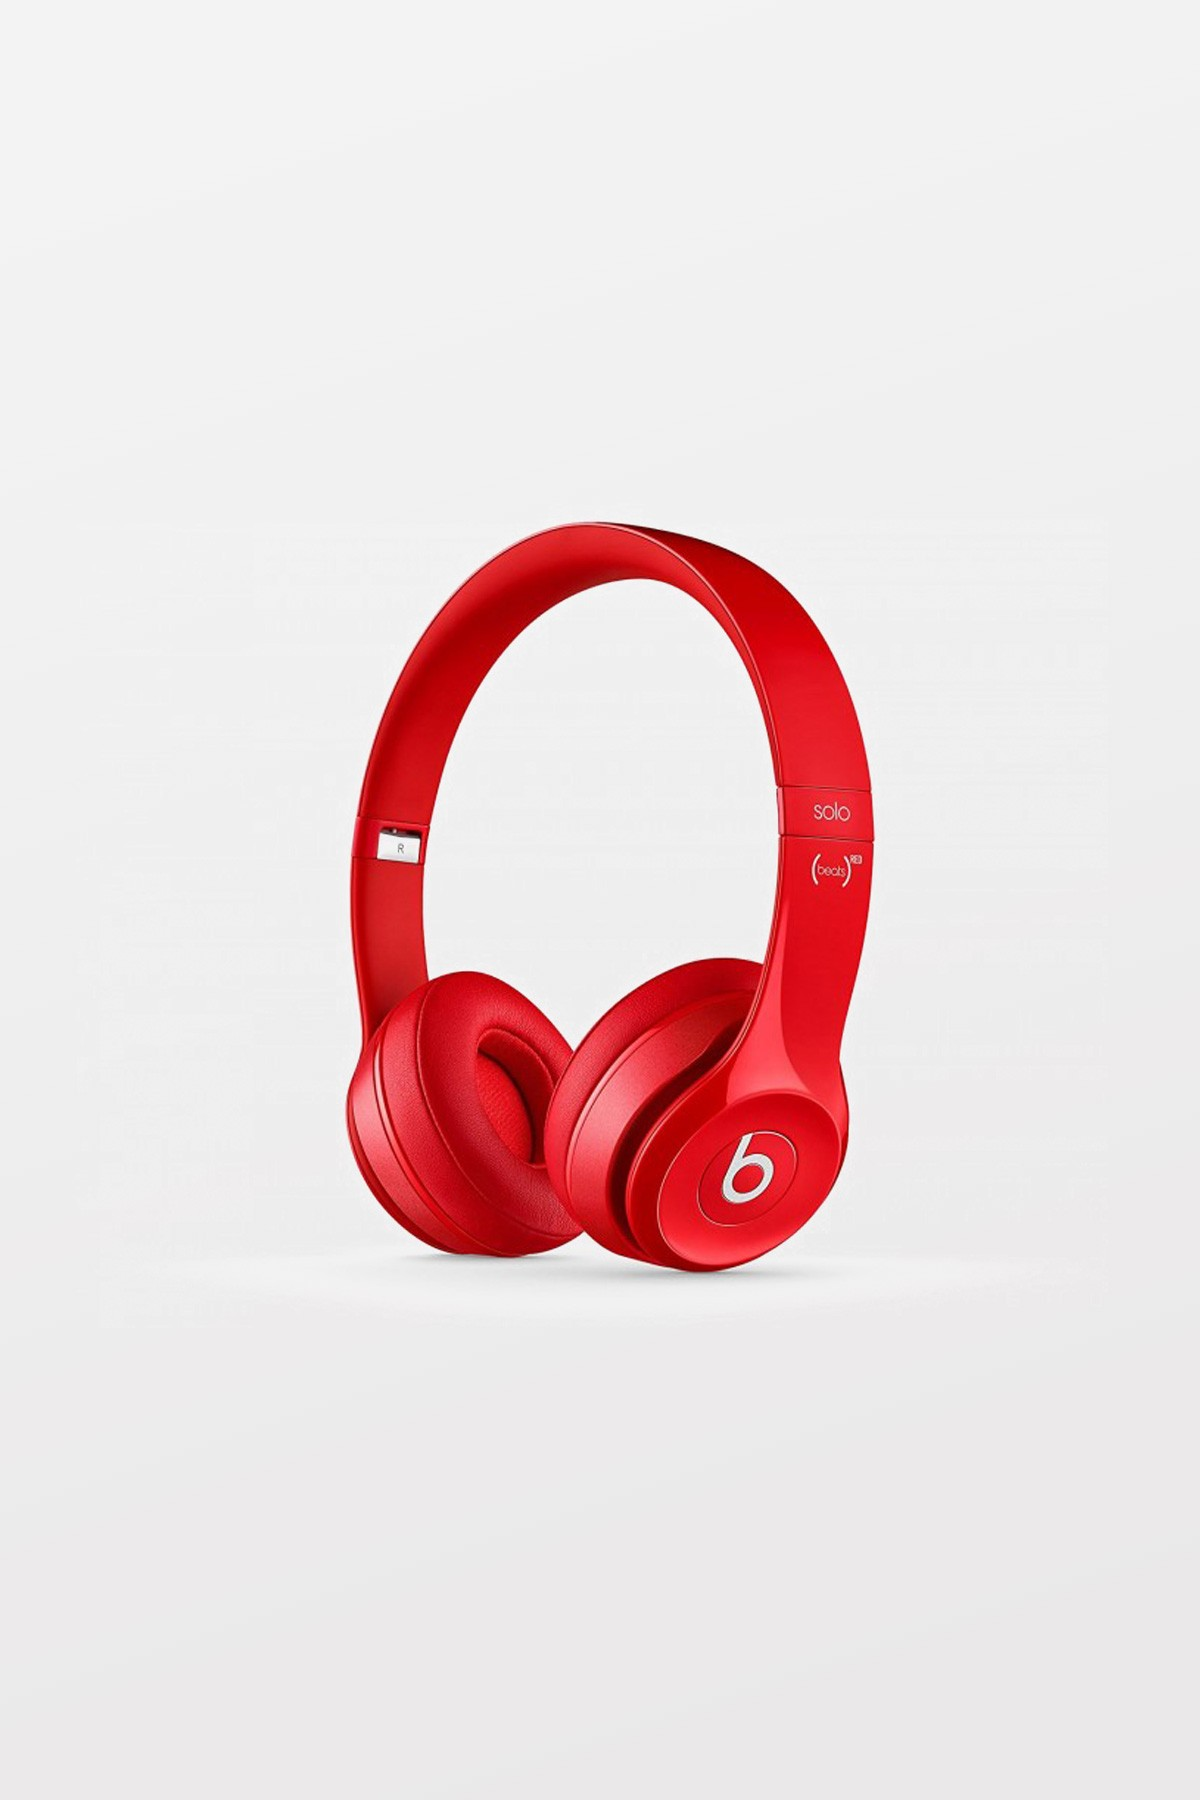 Beats By Dr Dre Solo2 Wired On-Ear Headphones - Red - Refurbished